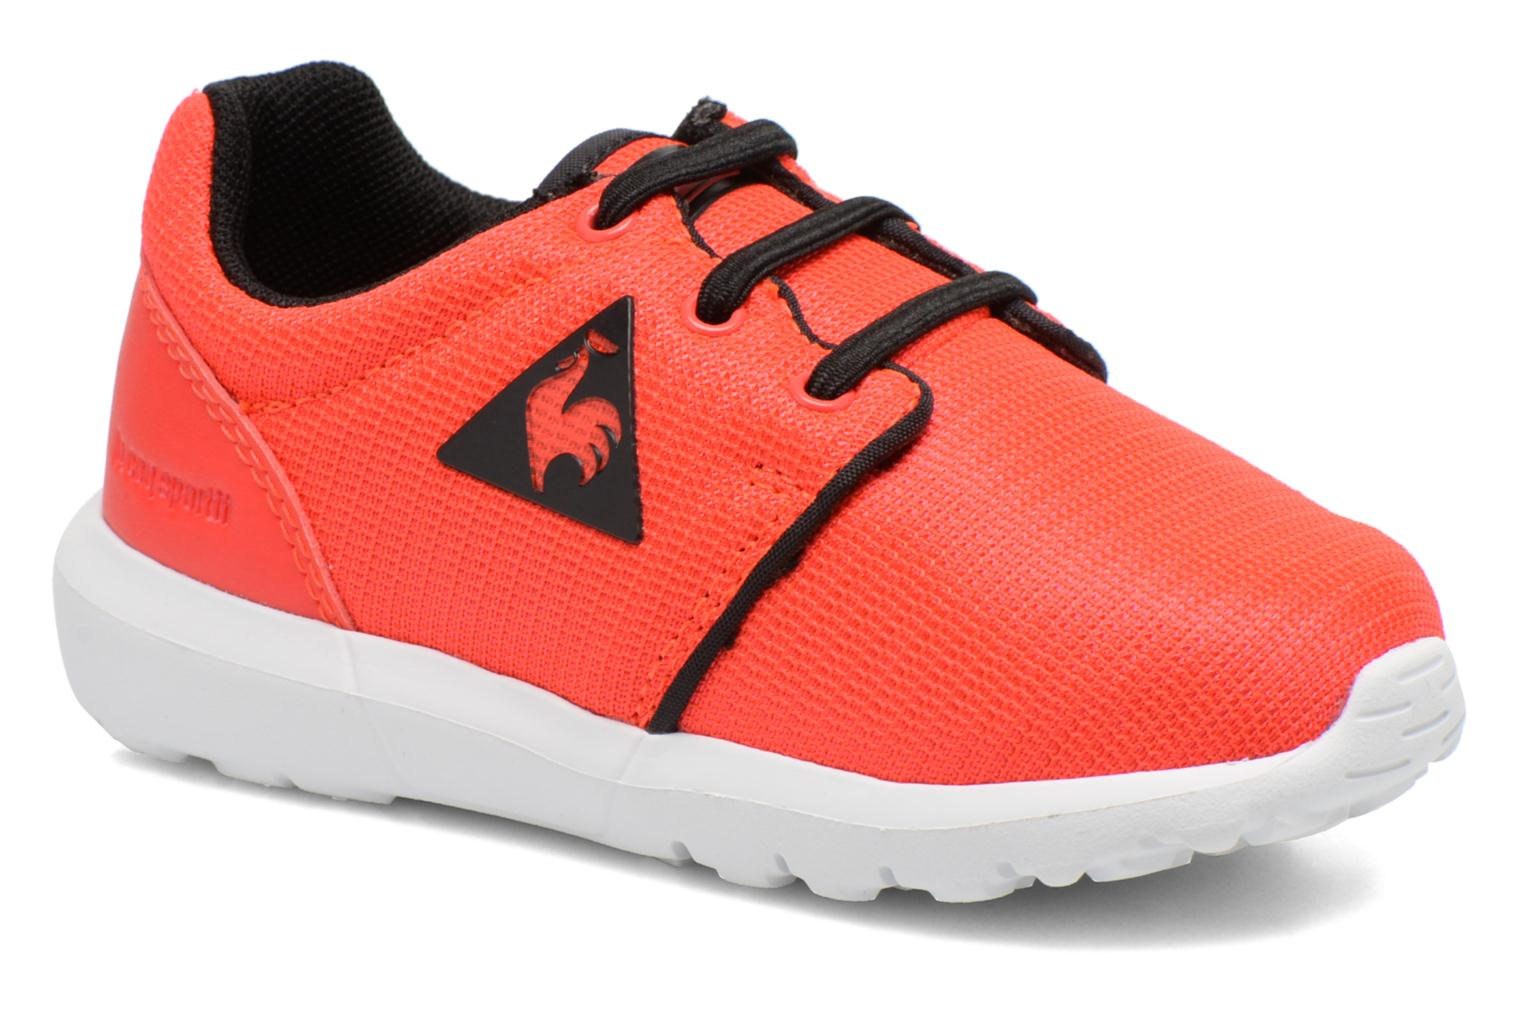 sneakers-dynacomf-inf-mesh-by-le-coq-sportif